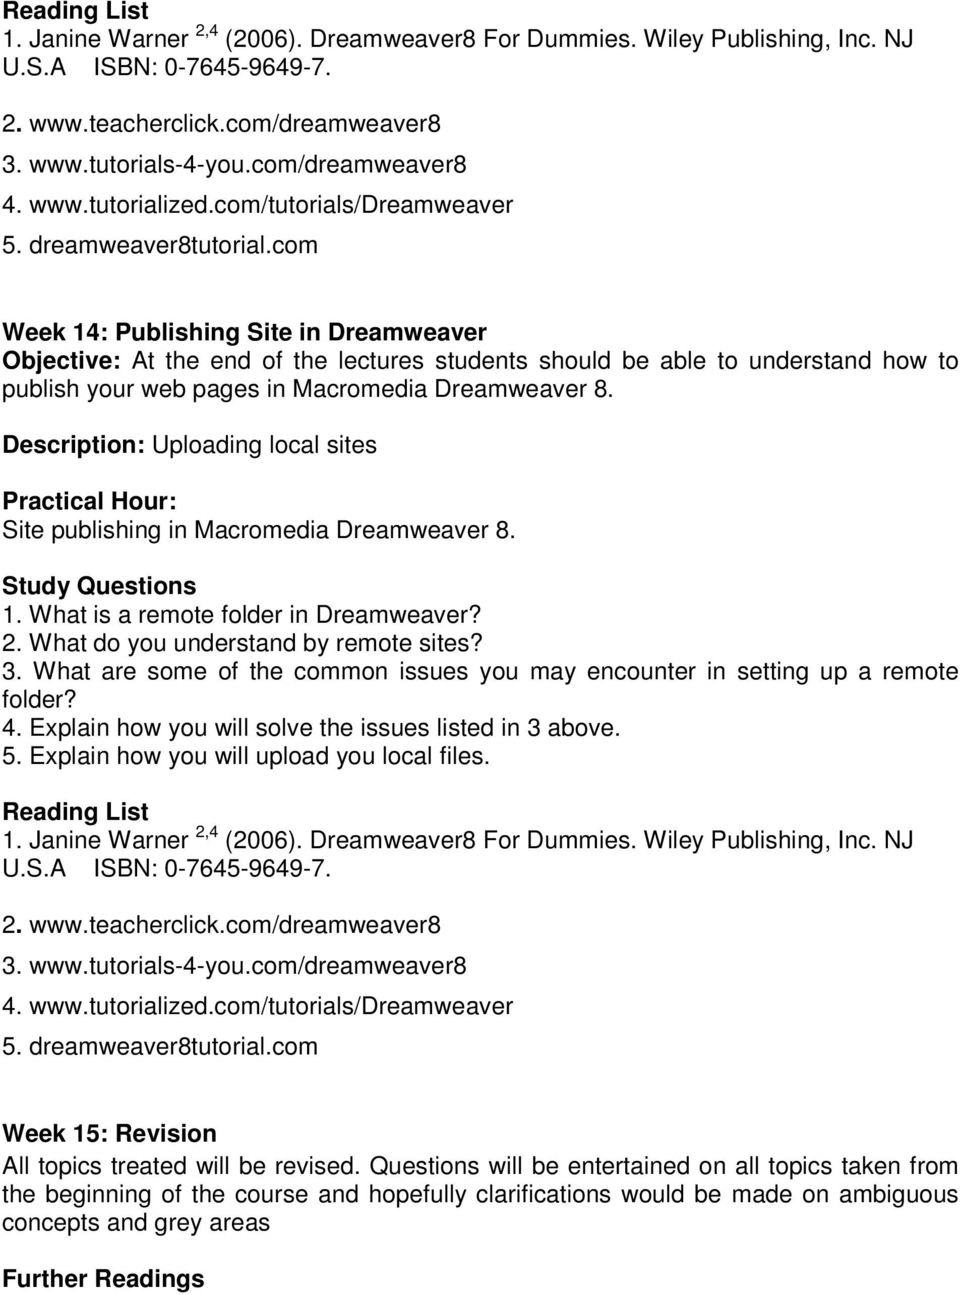 com Week 14: Publishing Site in Dreamweaver Objective: At the end of the lectures students should be able to understand how to publish your web pages in Macromedia Dreamweaver 8.